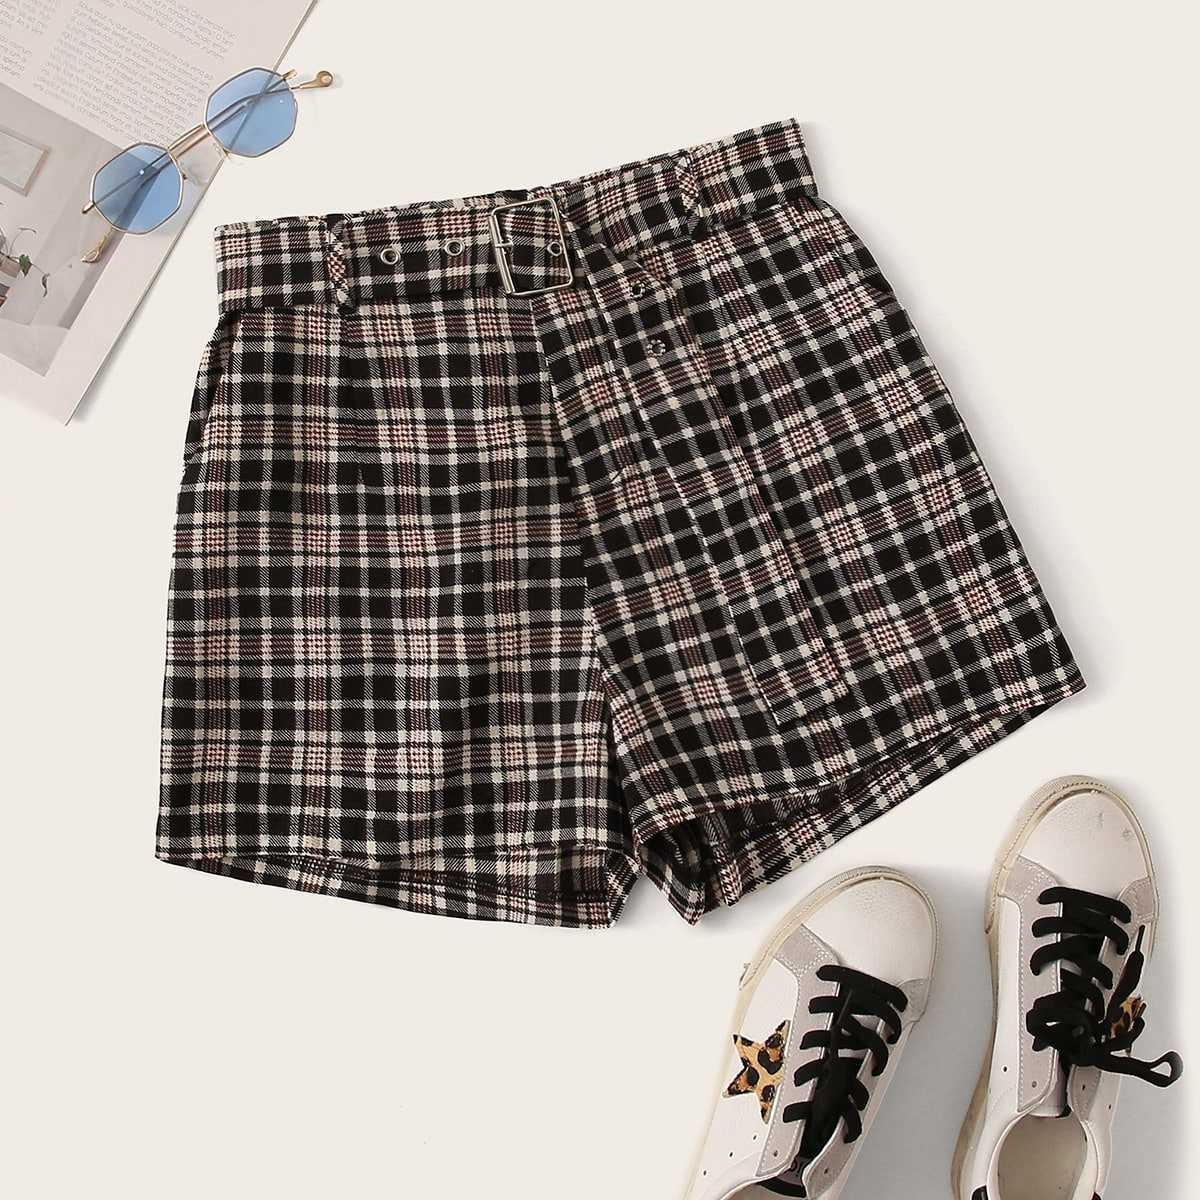 Plaid Print High Waist Belted Shorts in Multicolor by ROMWE on GOOFASH